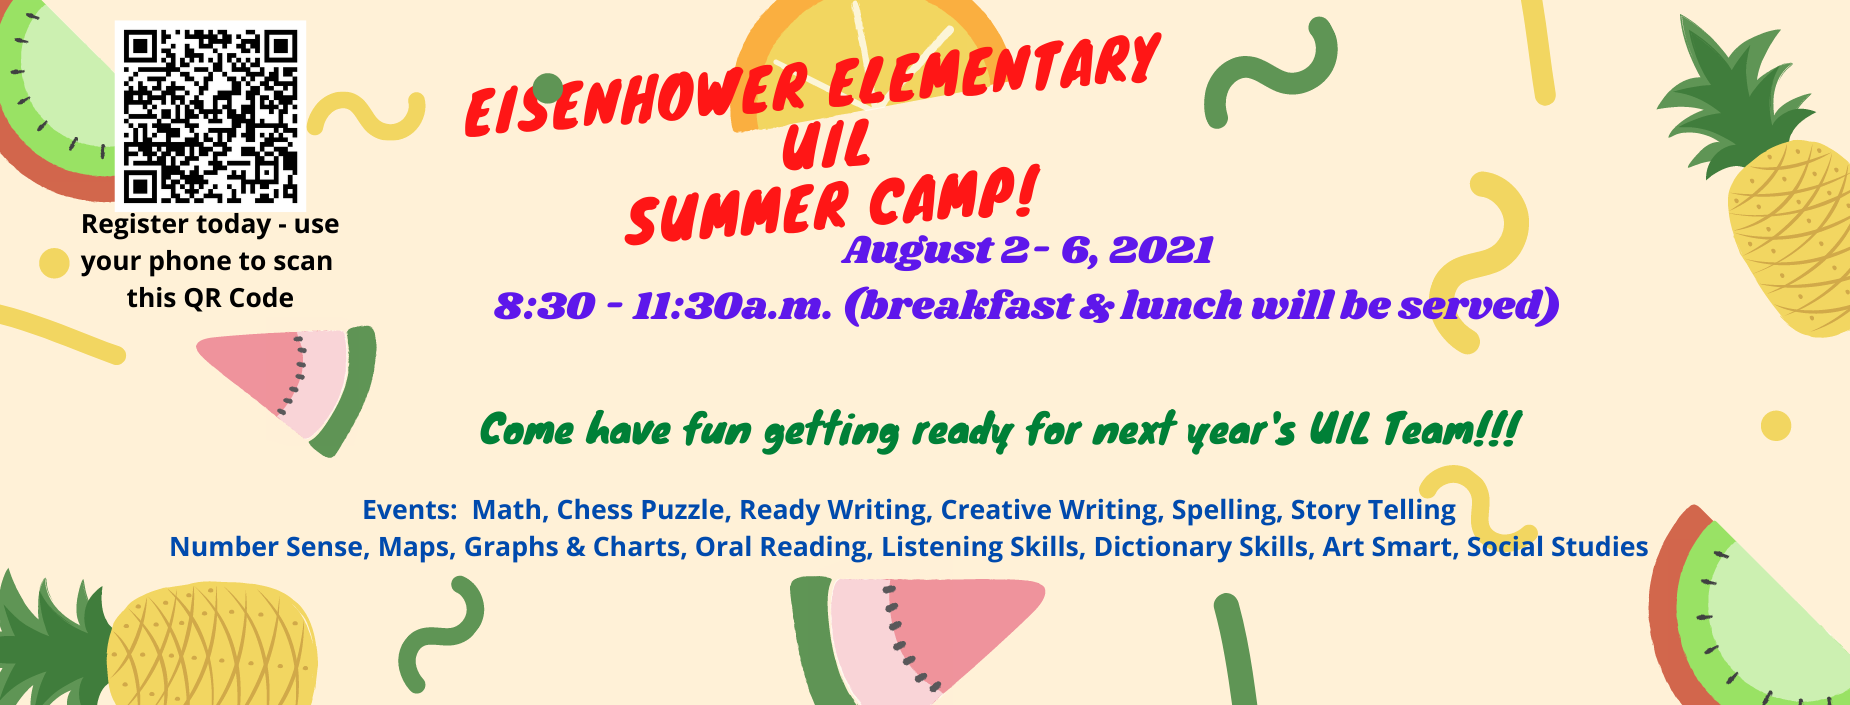 Image of UIL Camp flyer